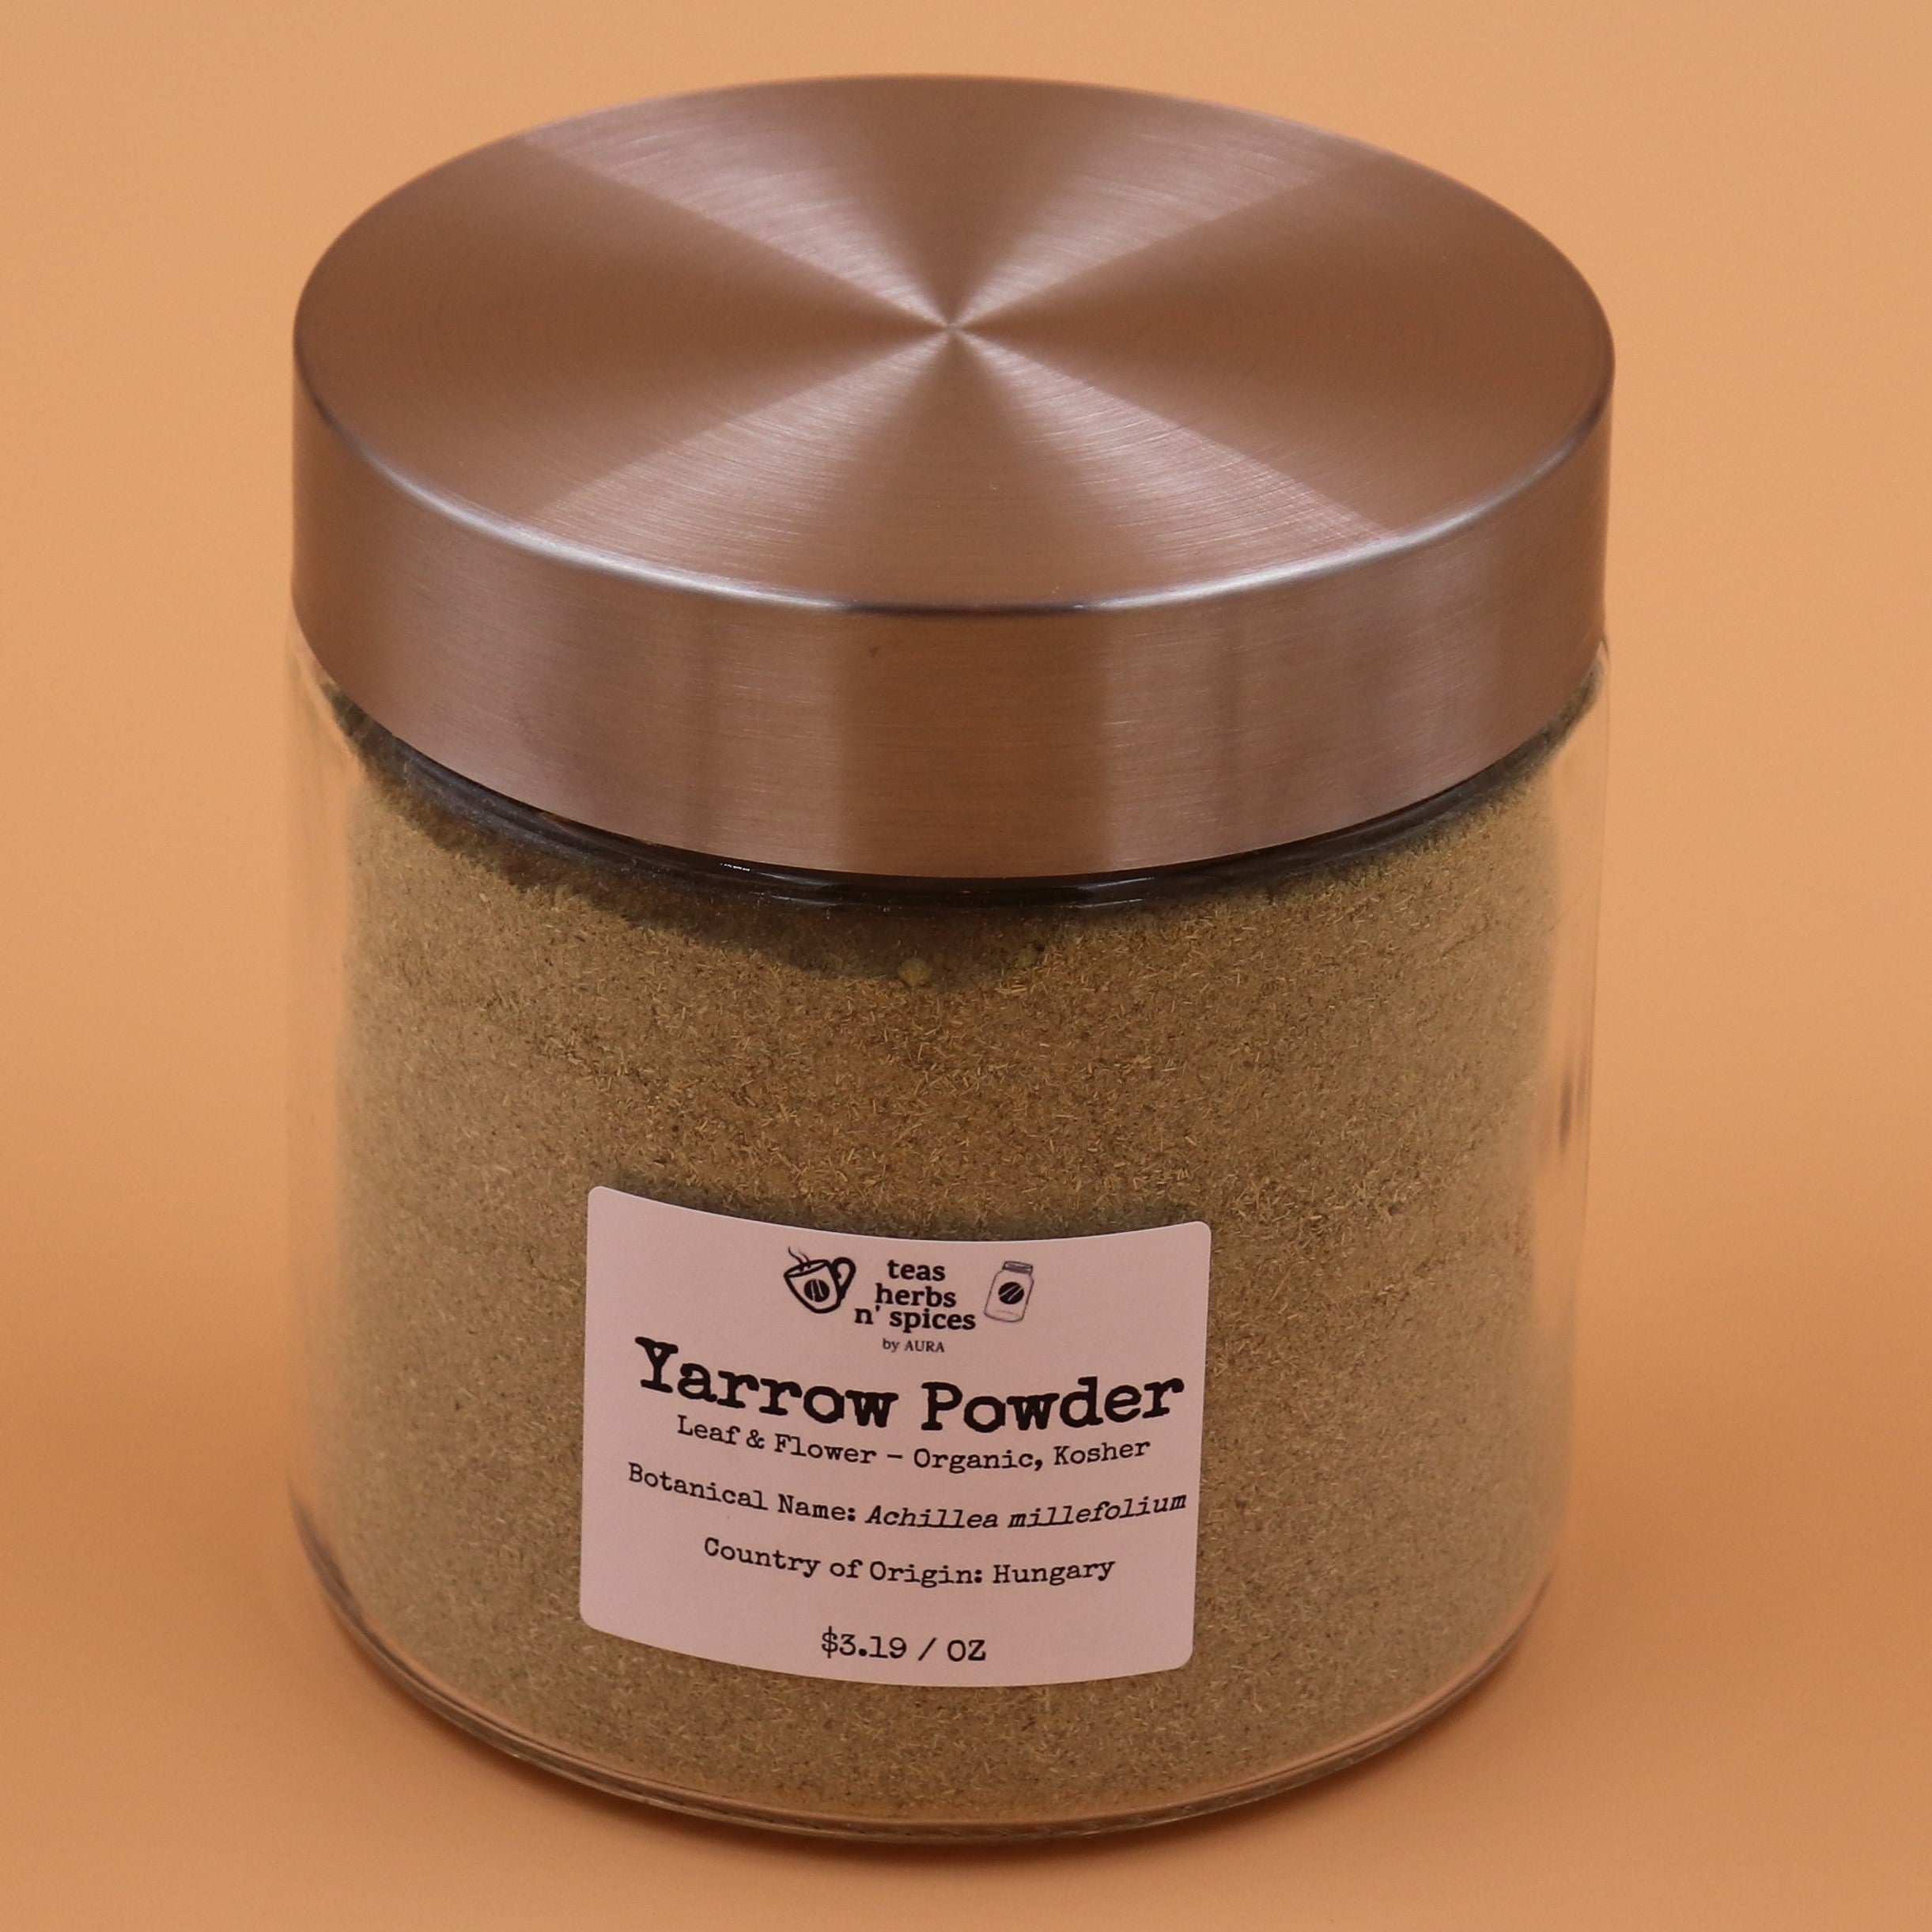 Yarrow Powder